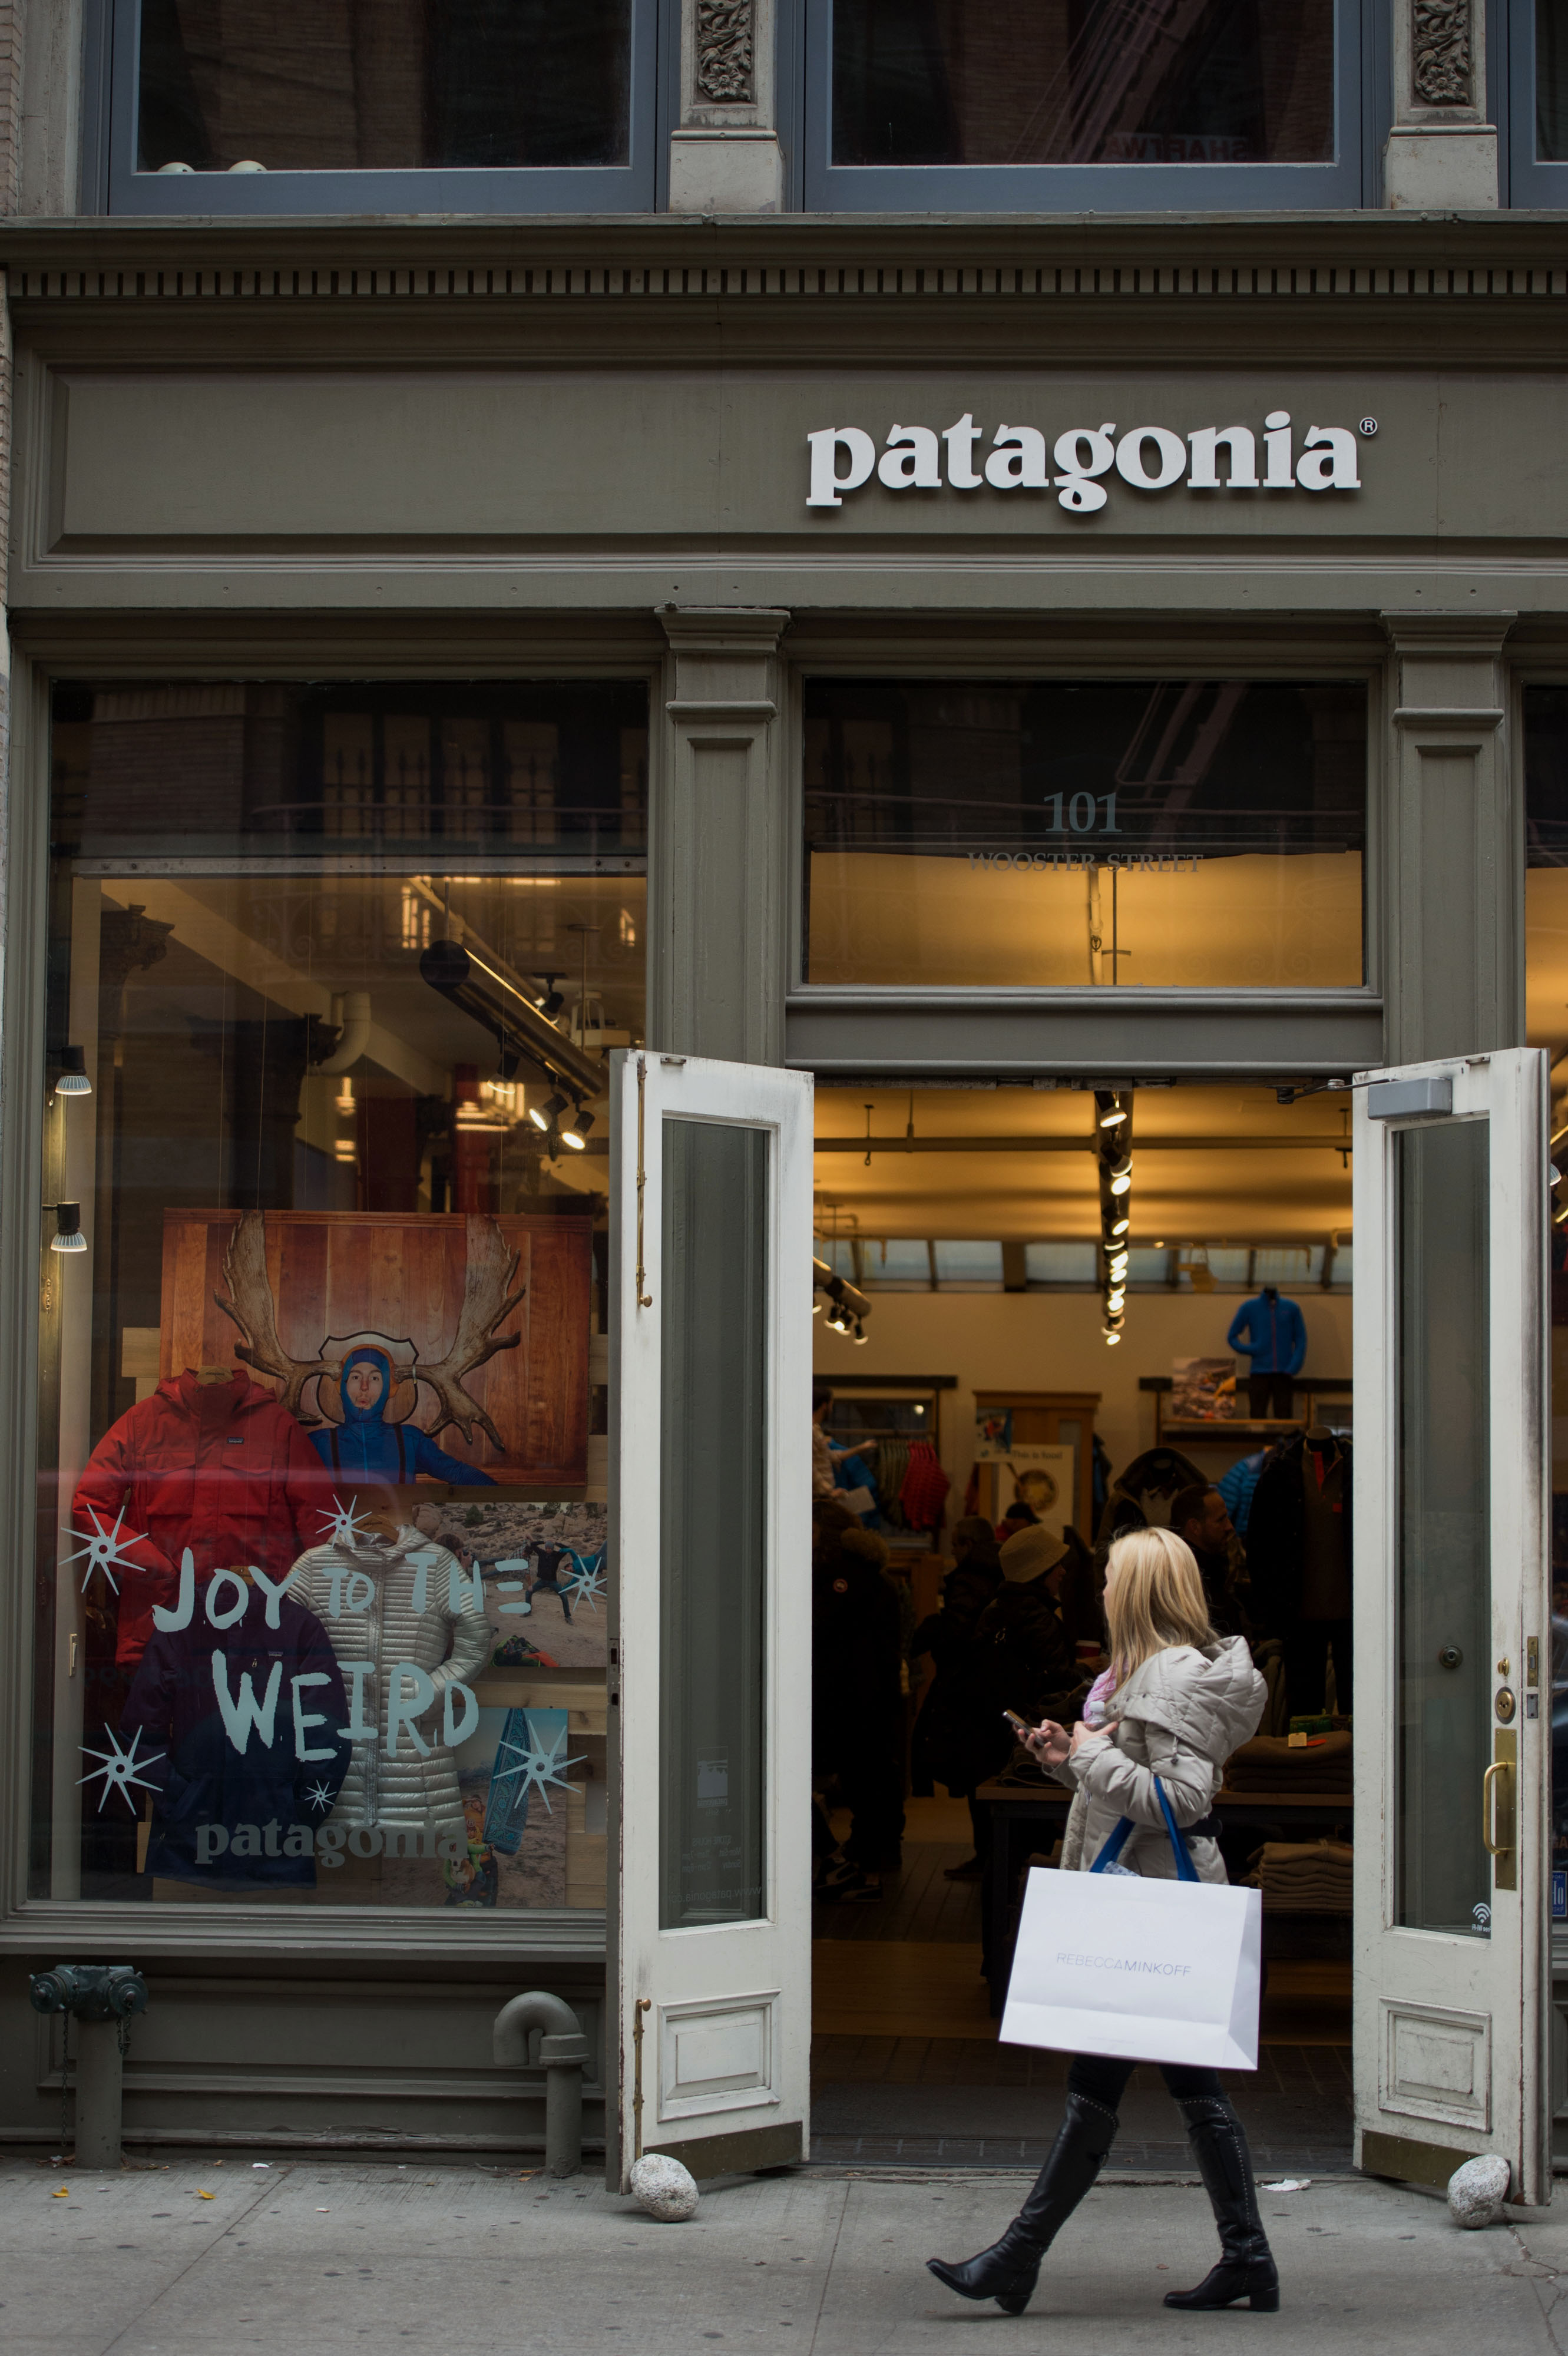 Patagonia Joins Growing List of Companies Boycotting Facebook Ads